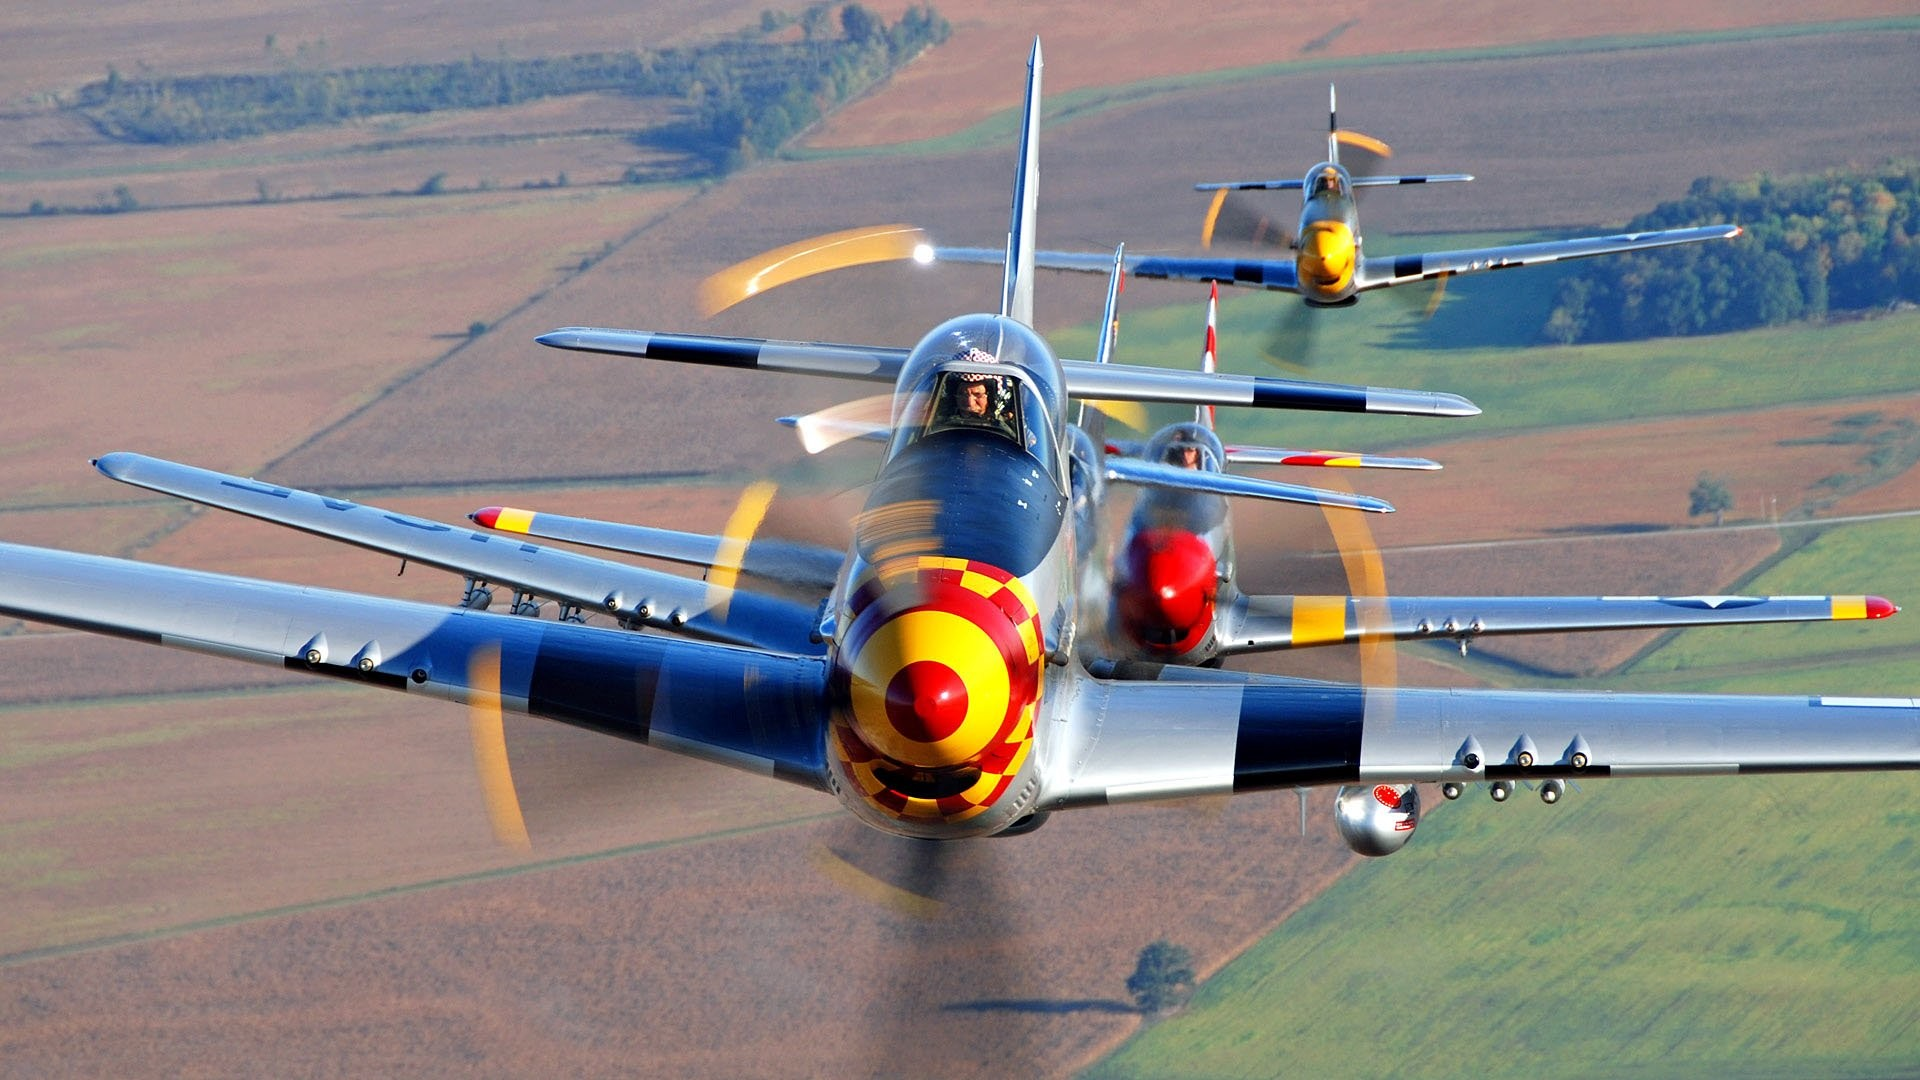 P-51 Mustang – In WW2, they were used to escort bombers in raids